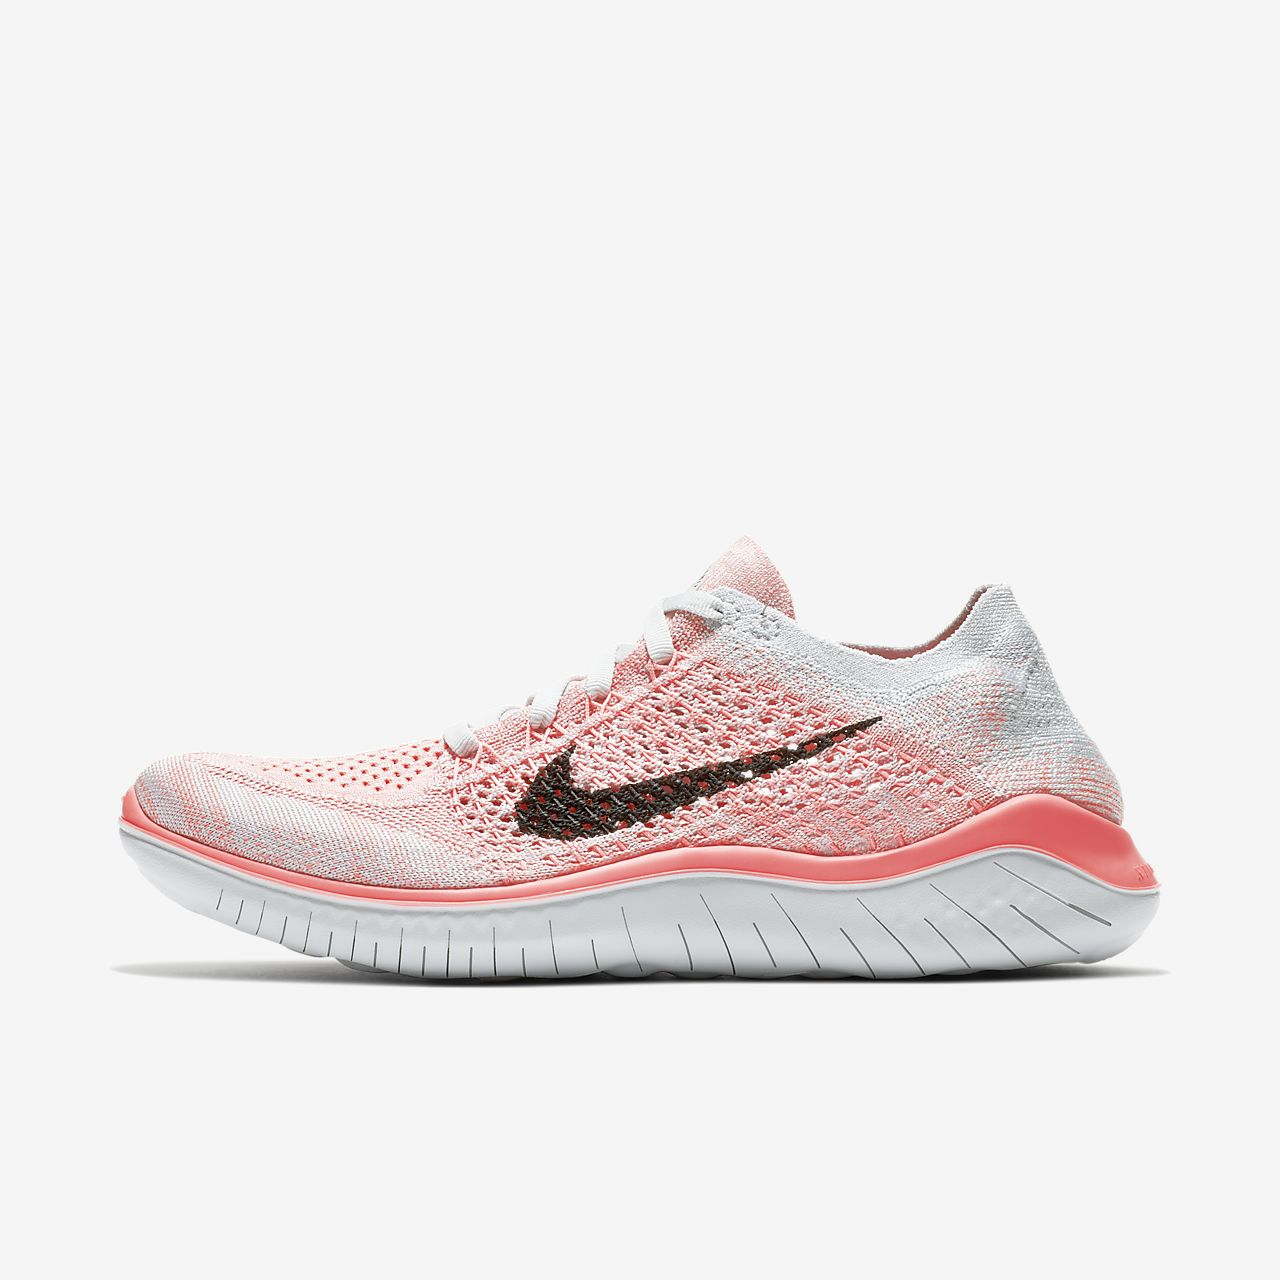 huge selection of 7465c edb7b ... blanche fonctionnement aq0533 100 80b5c 0ac8f  ireland chaussure de  running nike free rn flyknit 2018 pour femme ac09c 0a83f